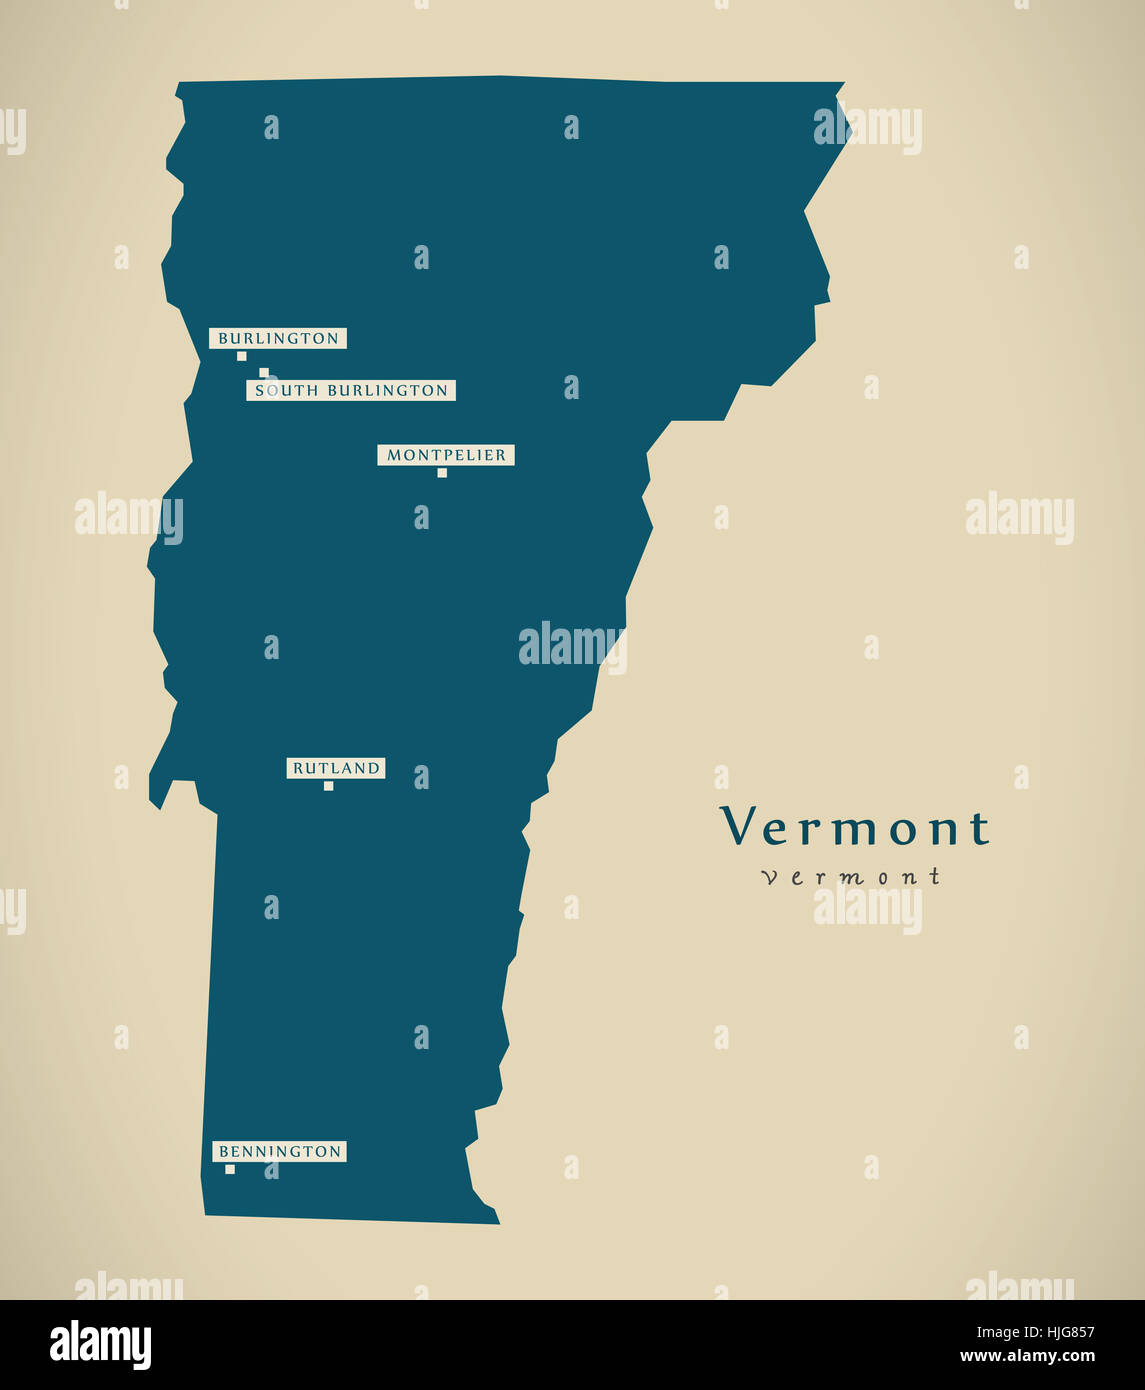 Vermont State Map Stock Photos Vermont State Map Stock Images Alamy